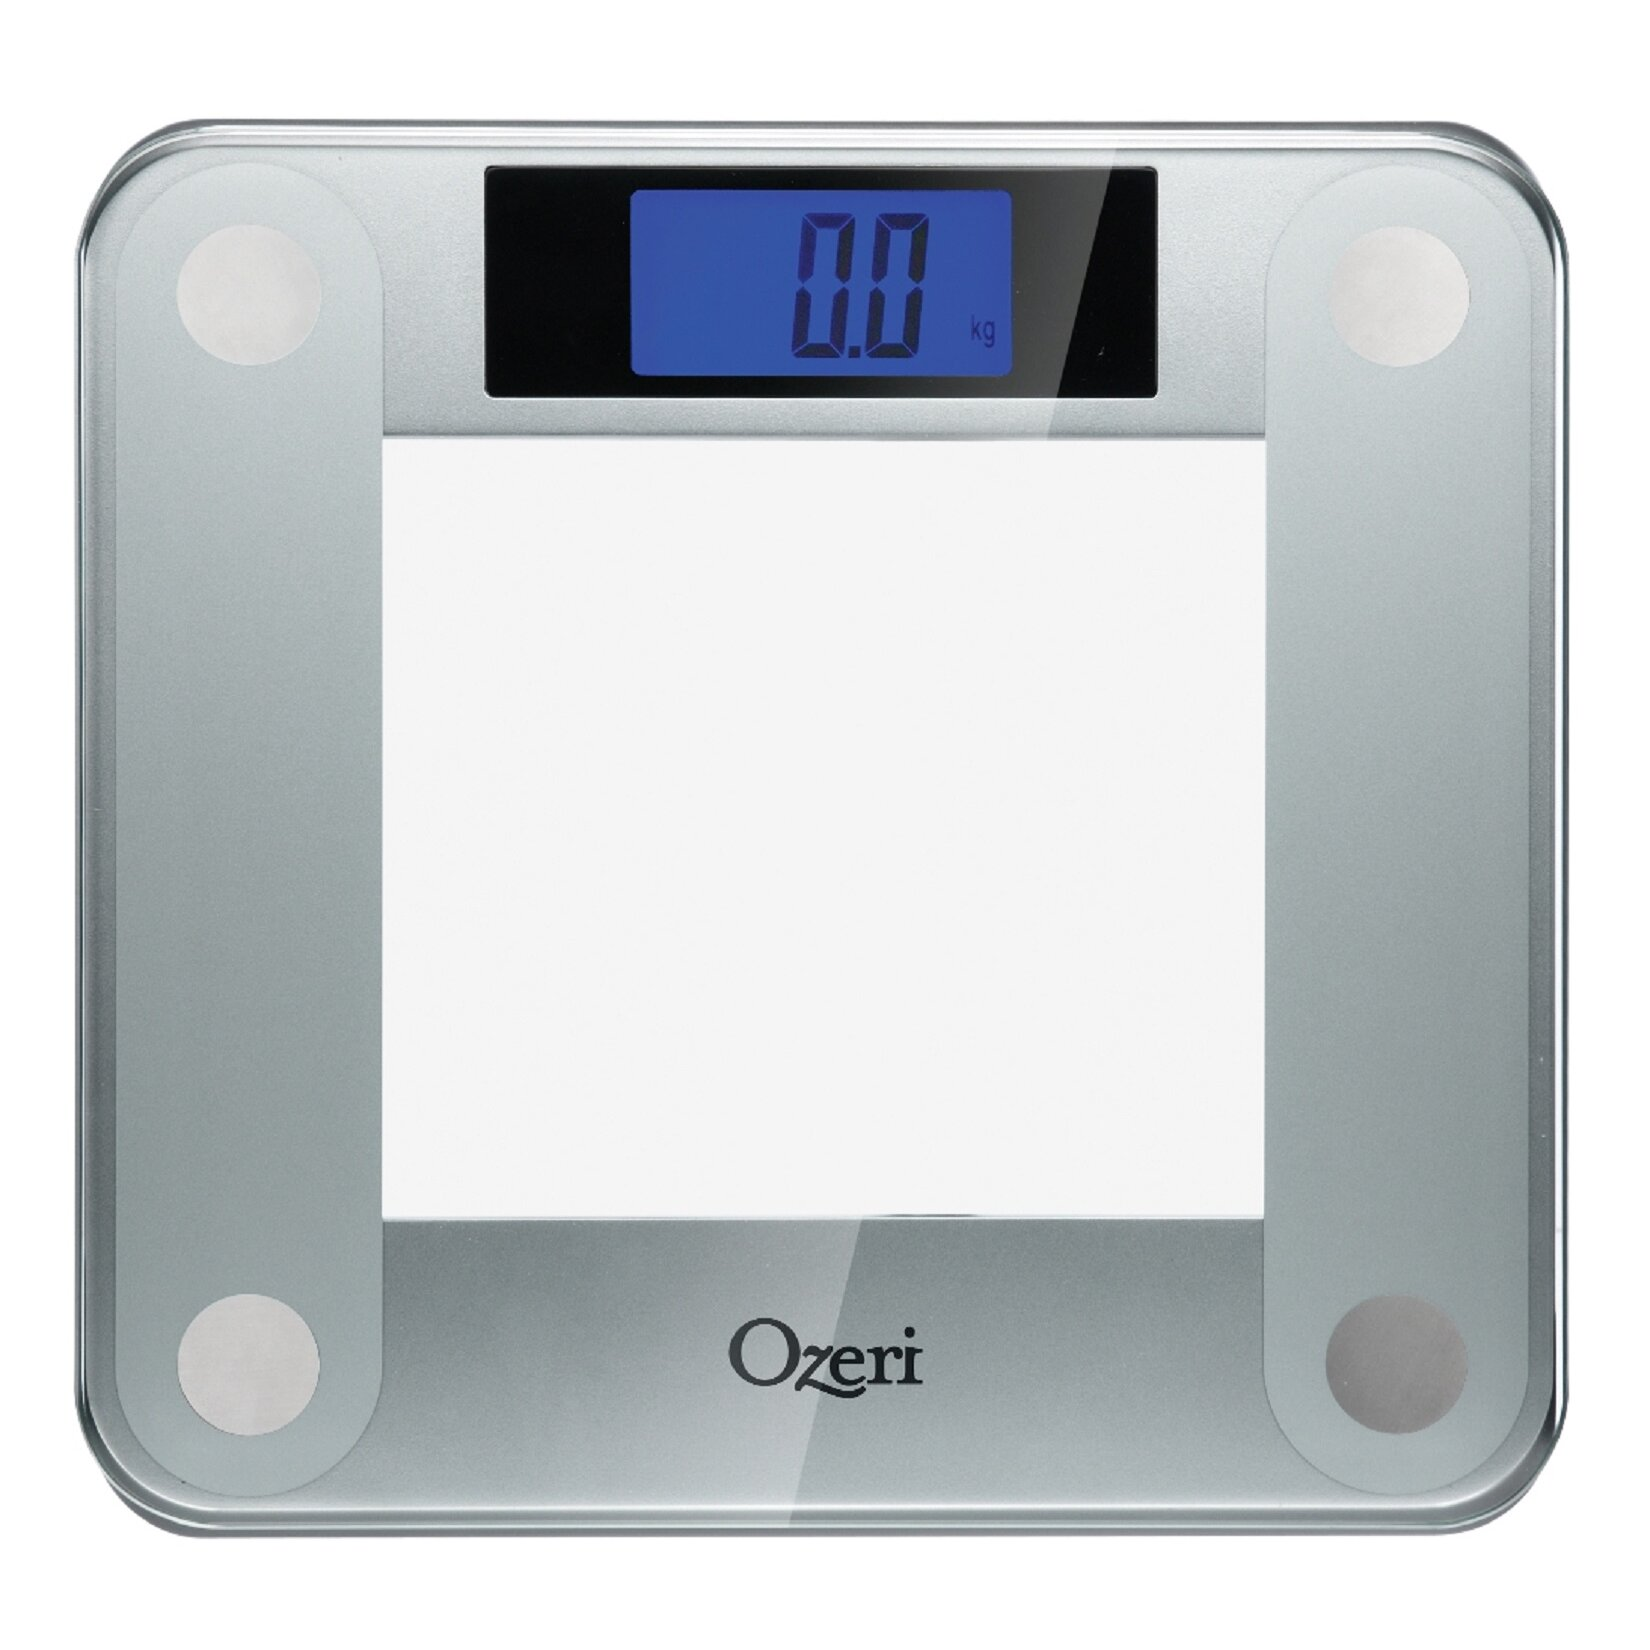 Bathroom Scale Ratings: Ozeri Precision II 440 Lbs Digital Bath And Weight Scale